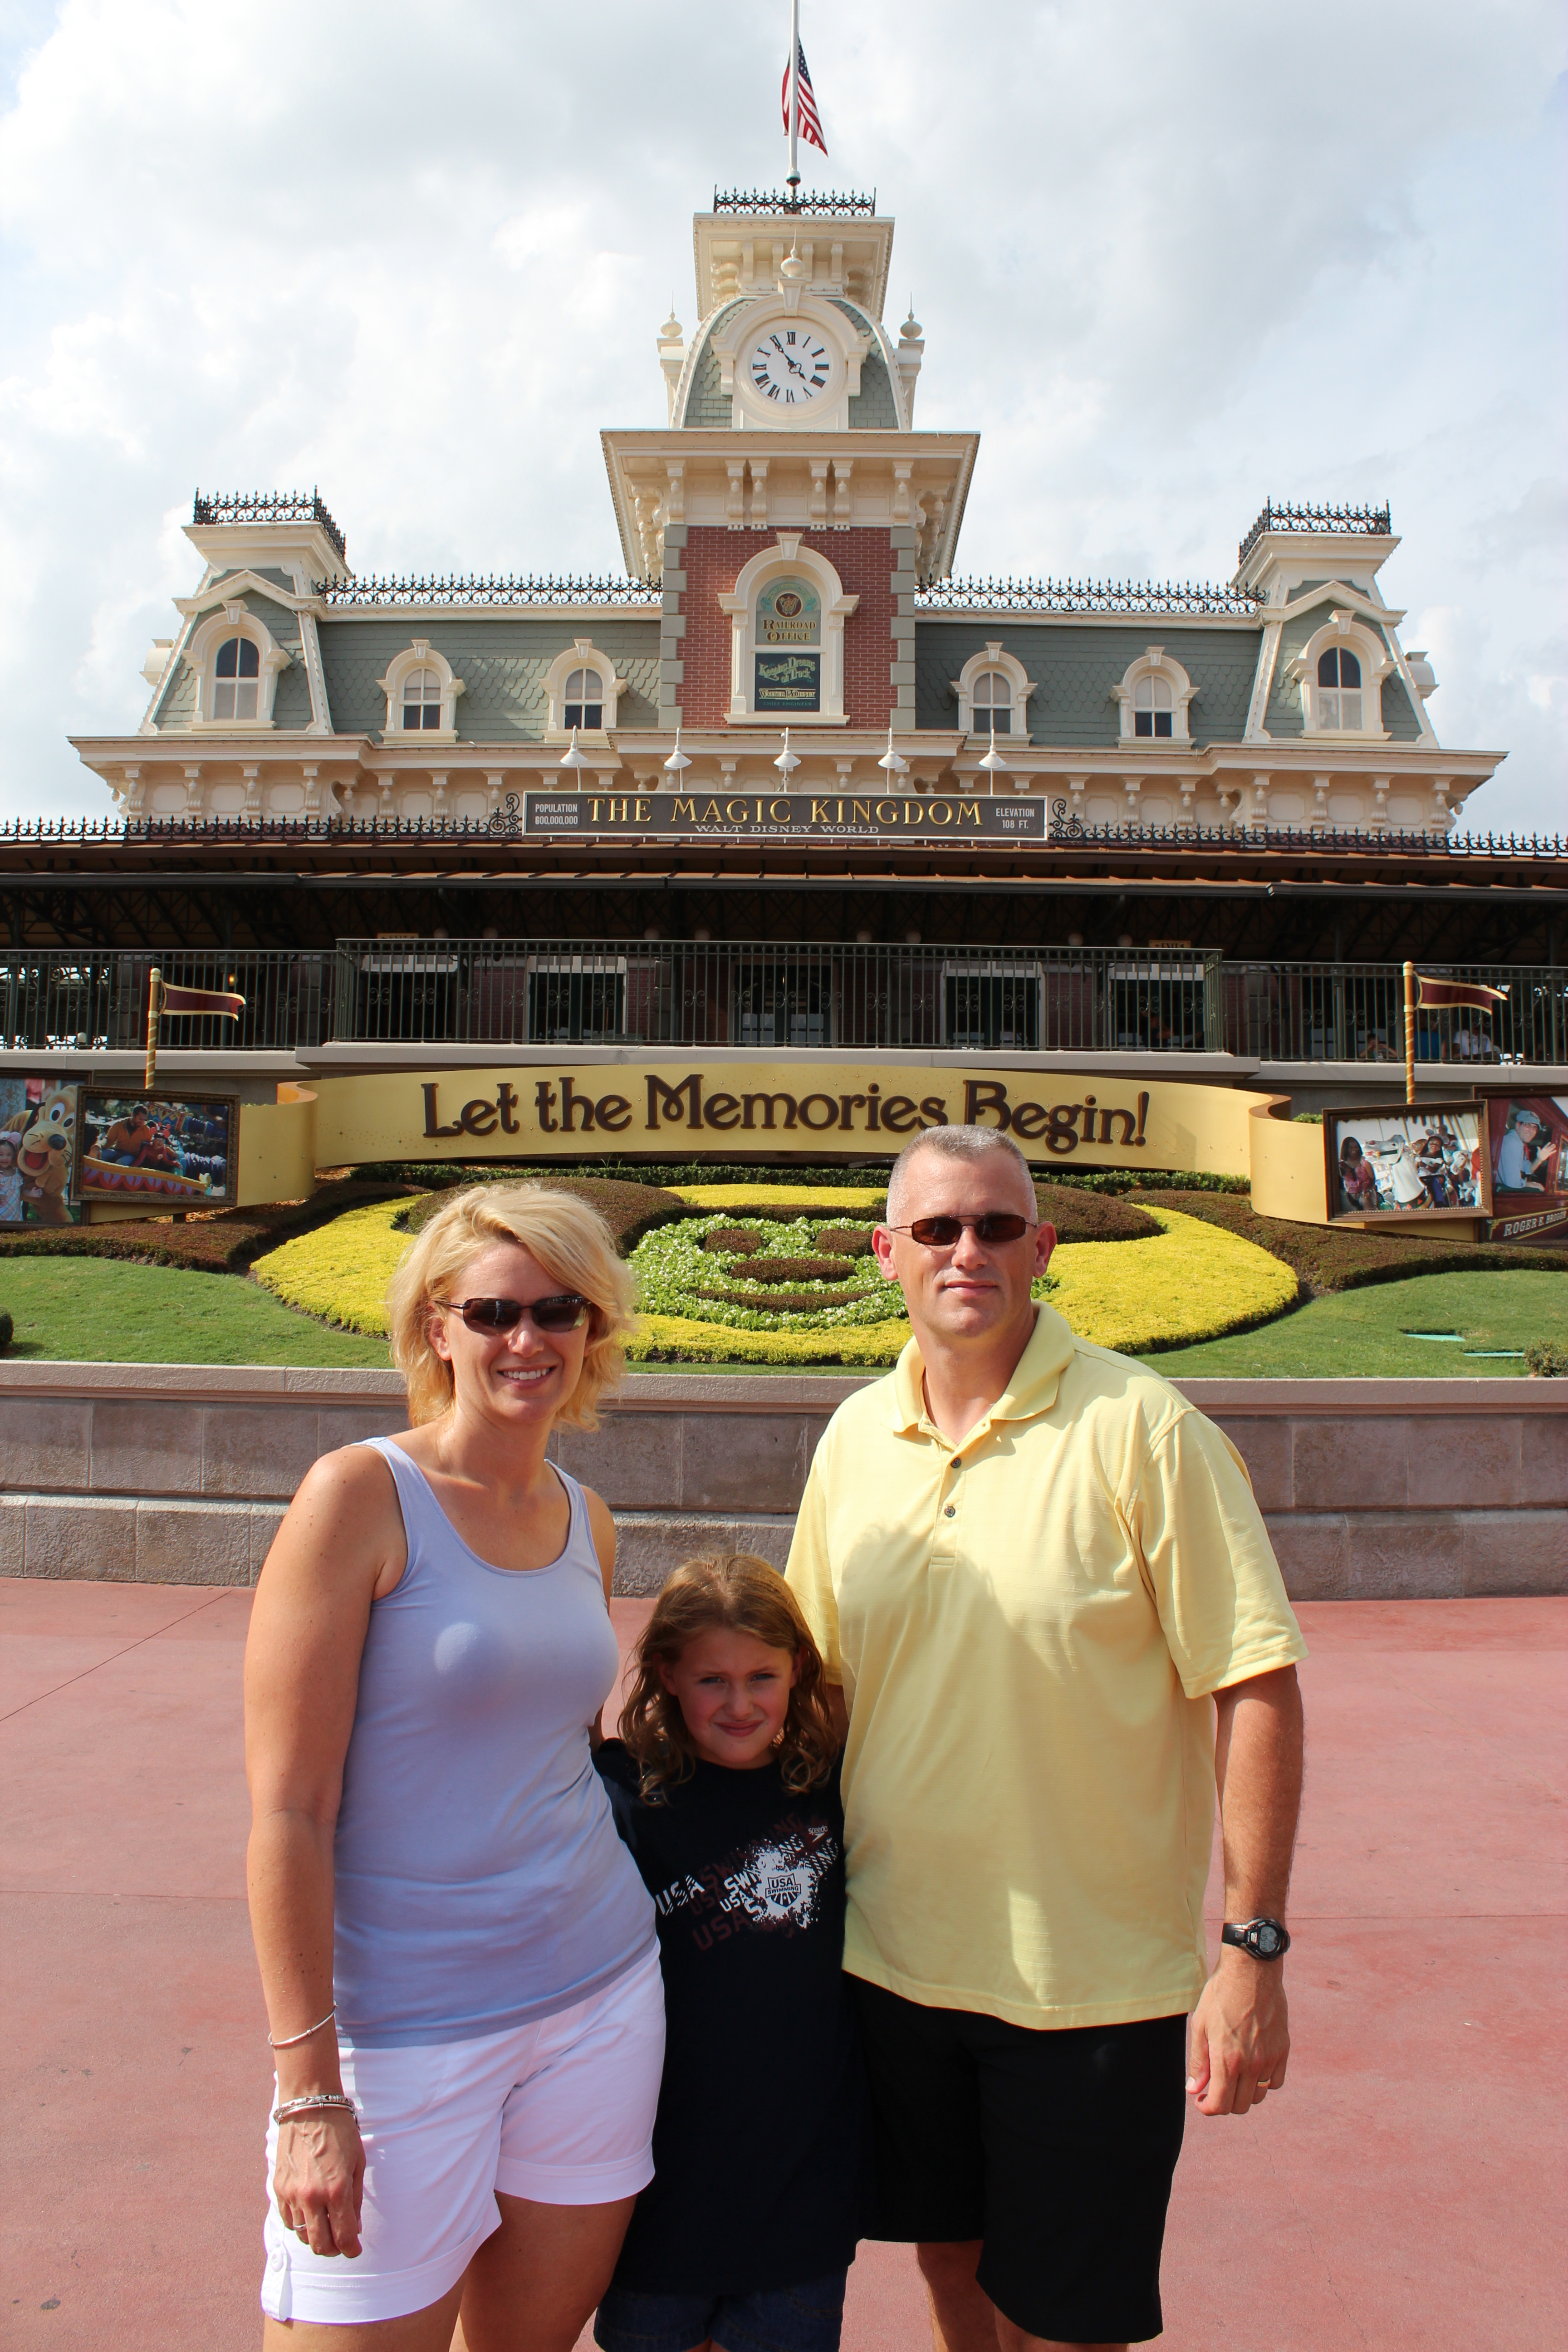 Family Photo at the entrance to the Magic Kingdom at Disney World.  From Let the Light in Photography's Blog